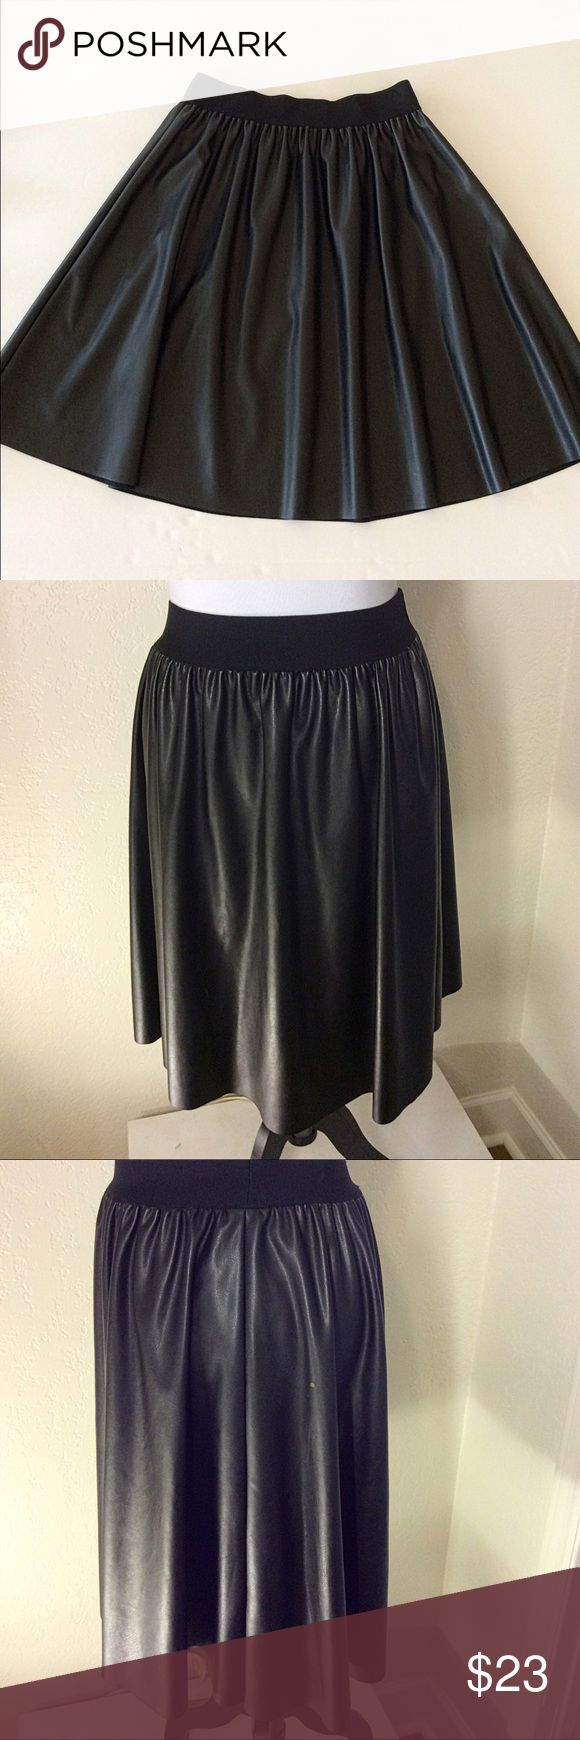 """CALVIN KLIEN FAUX LEATHER A-LINE PLEATED SKIRT Faux leather skirt with elastic waist. There are spots on the back left and on the back right near the side seam, possibly bleach spots (see pictures 7 and 8). Measures flat 15"""" across elastic waistband and 23"""" waist to hem. Calvin Klein Skirts"""